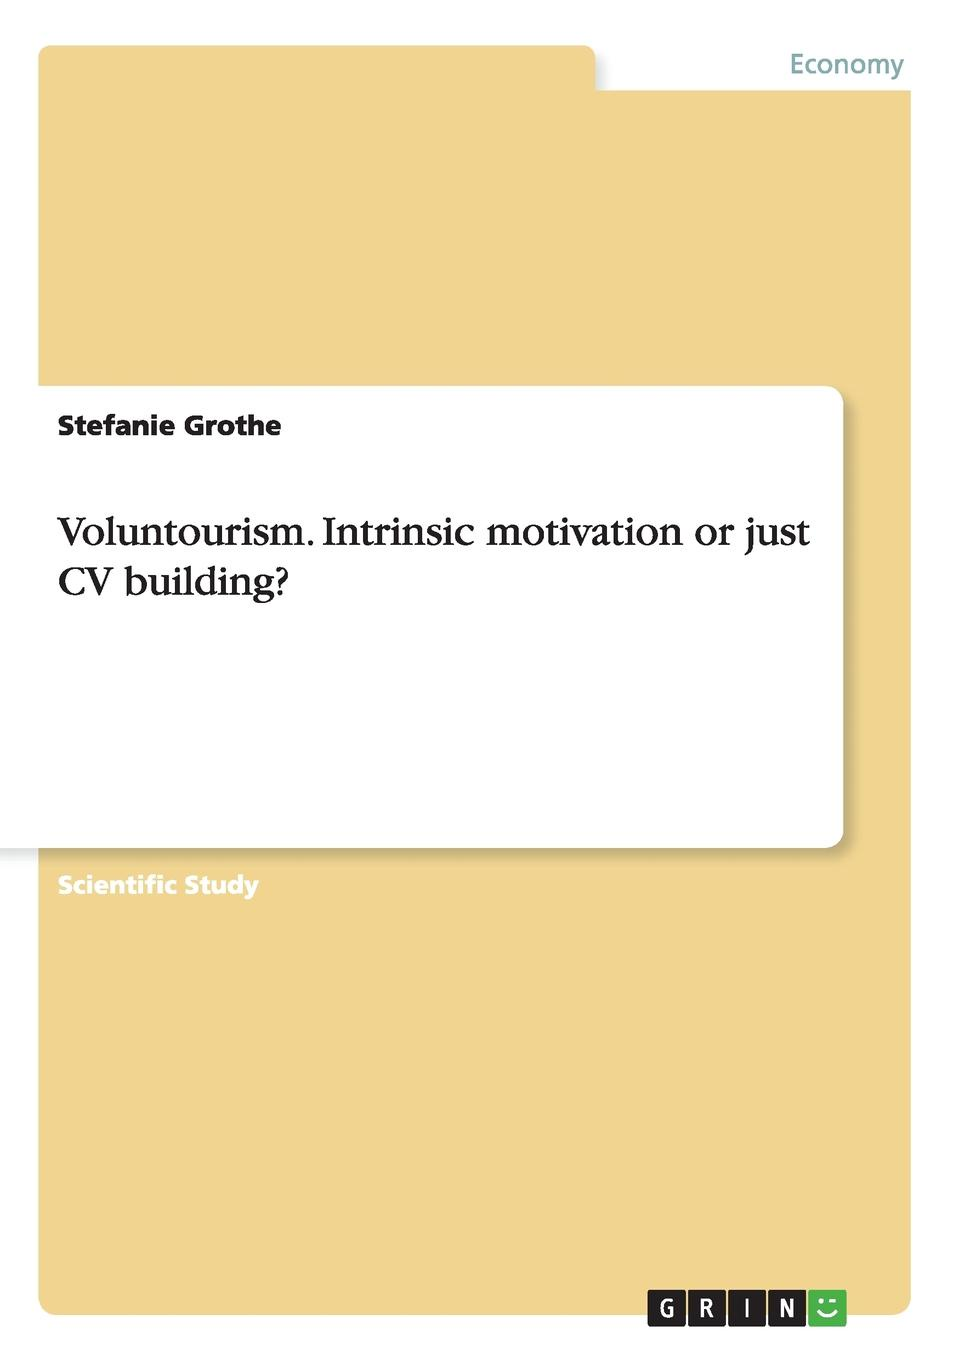 Stefanie Grothe Voluntourism. Intrinsic motivation or just CV building.